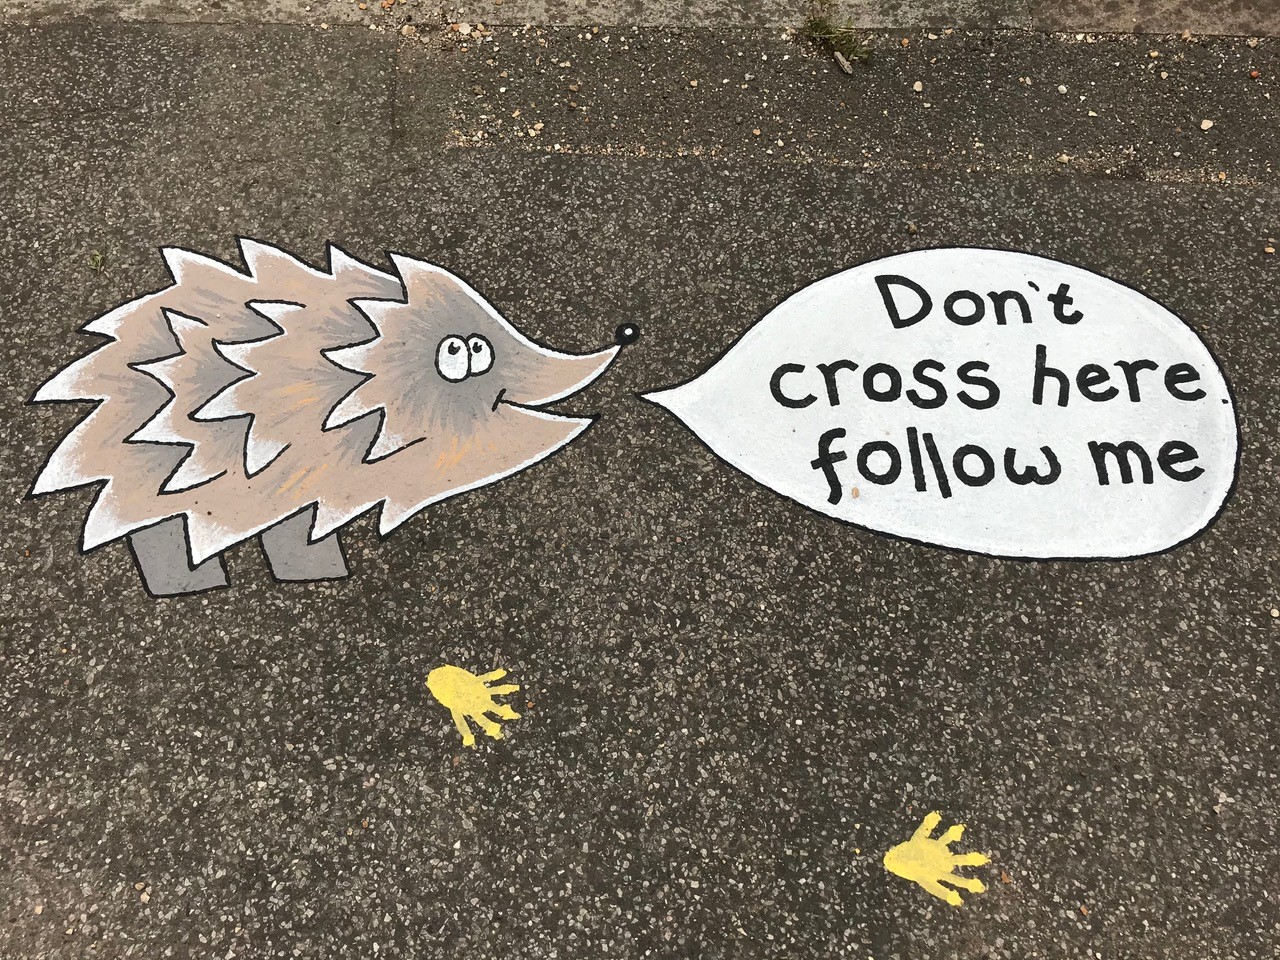 The pavement street art - a hedgehog with a speech bubble saying follow me